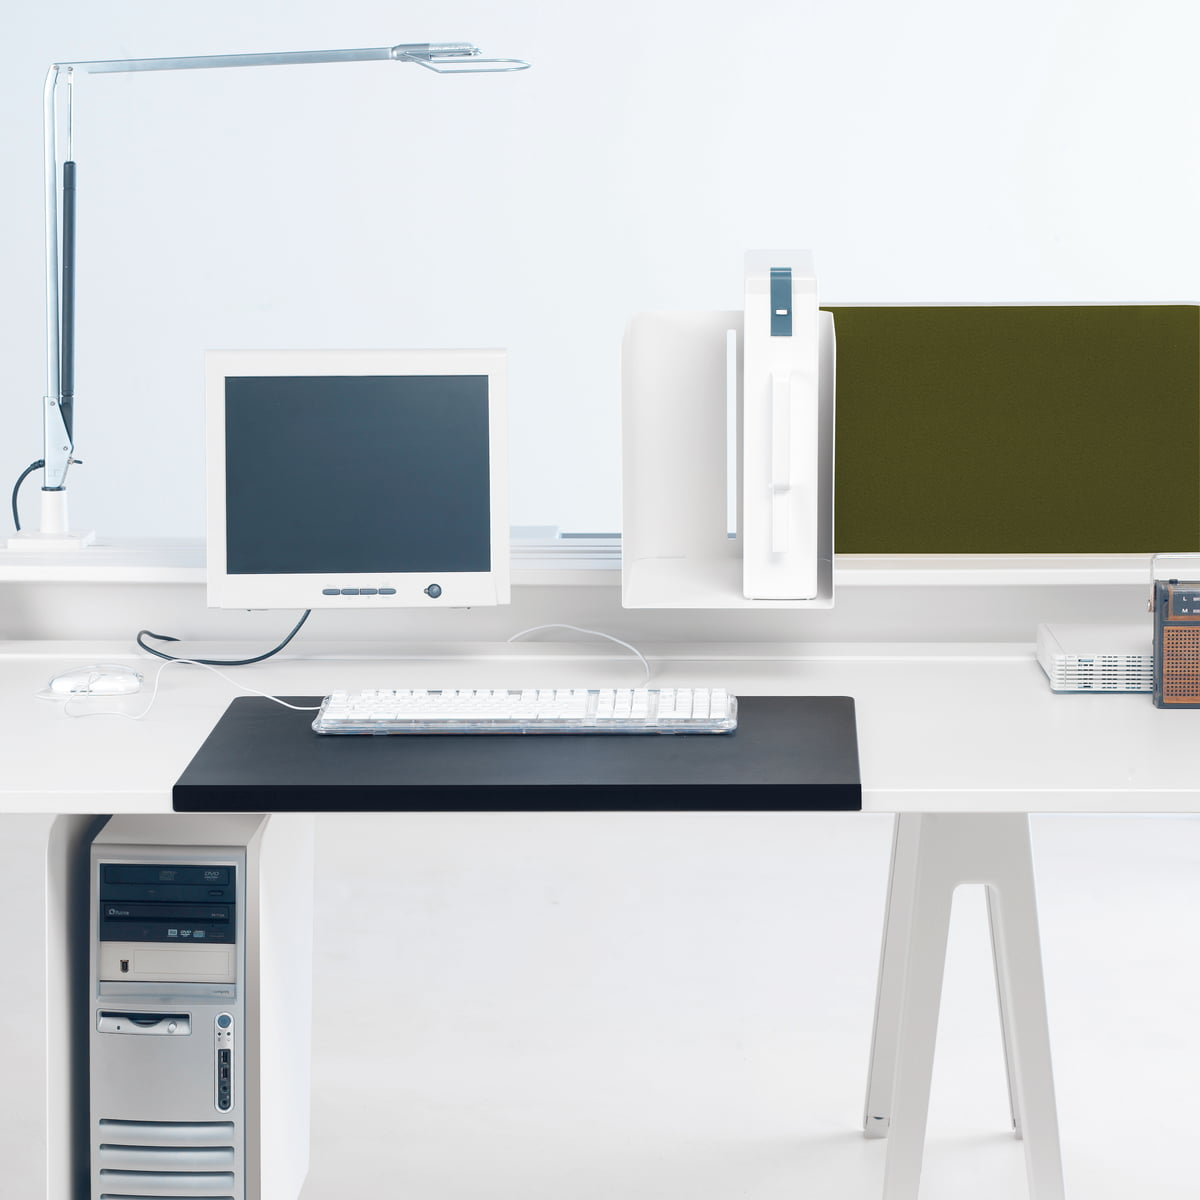 gray modular zoom put click lyon then shop product x full photo double reset at zmmain out steel desk